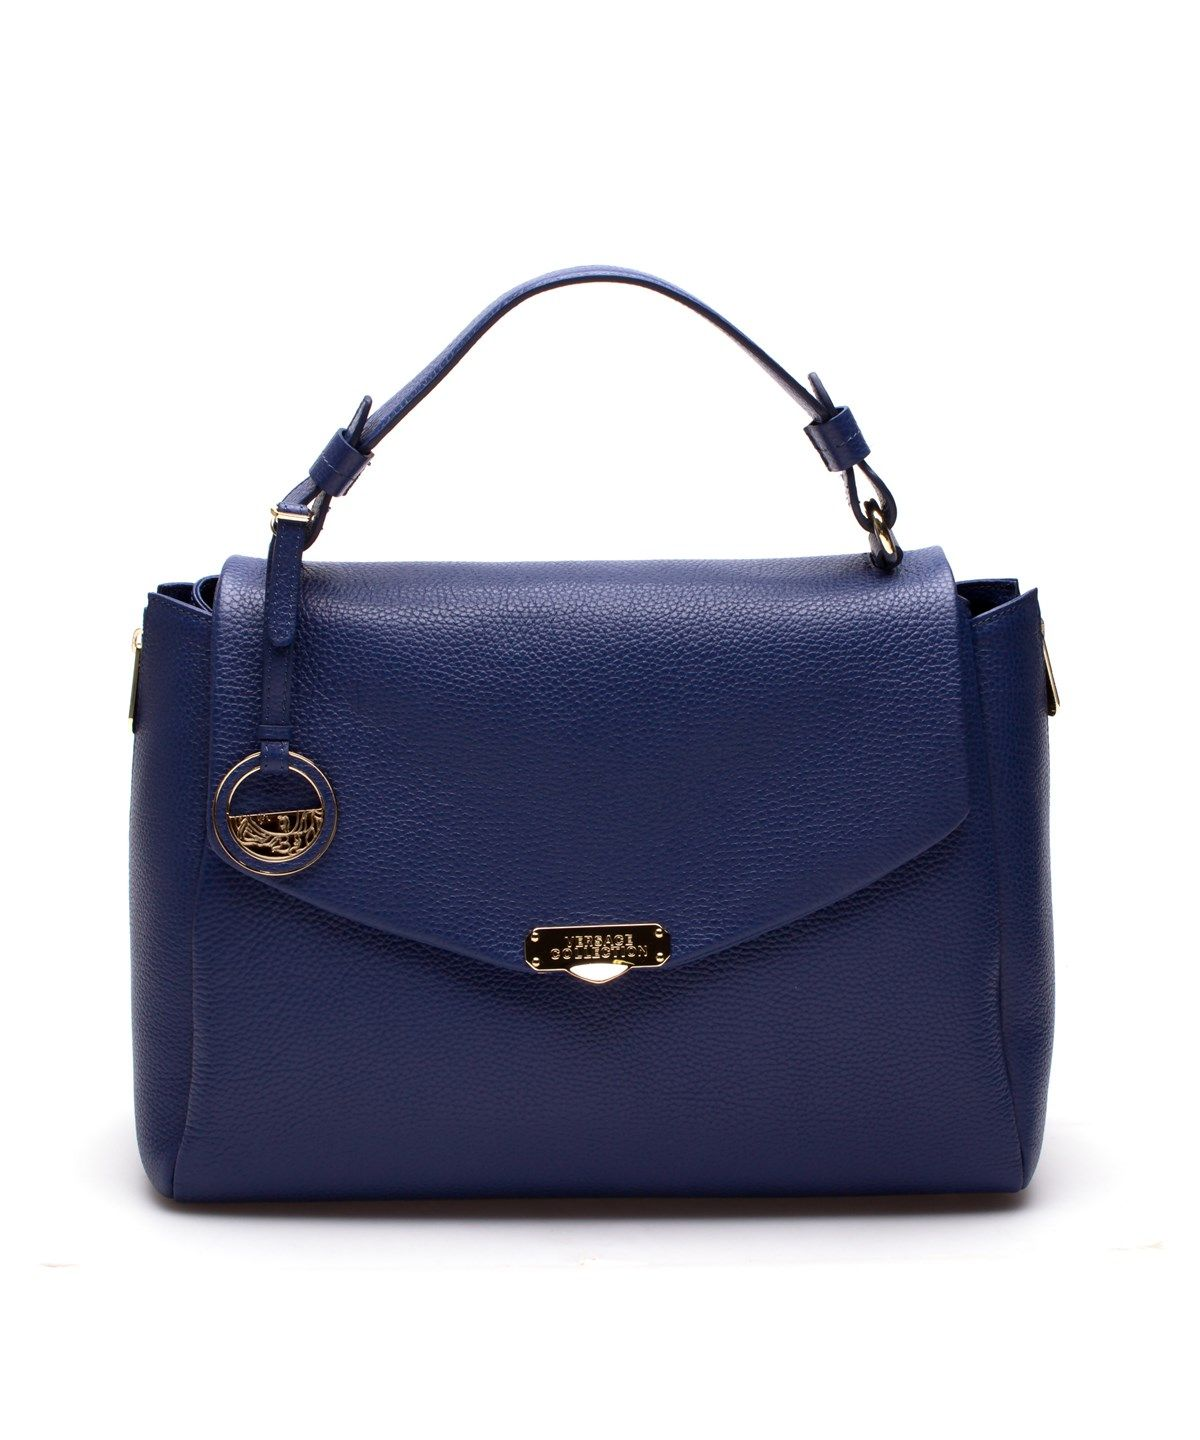 4c34cff4ba VERSACE Versace Collection Women Leather Satchel Handbag Vitello Stampa  Alce Blue .  versace  bags  leather  hand bags  satchel  cotton